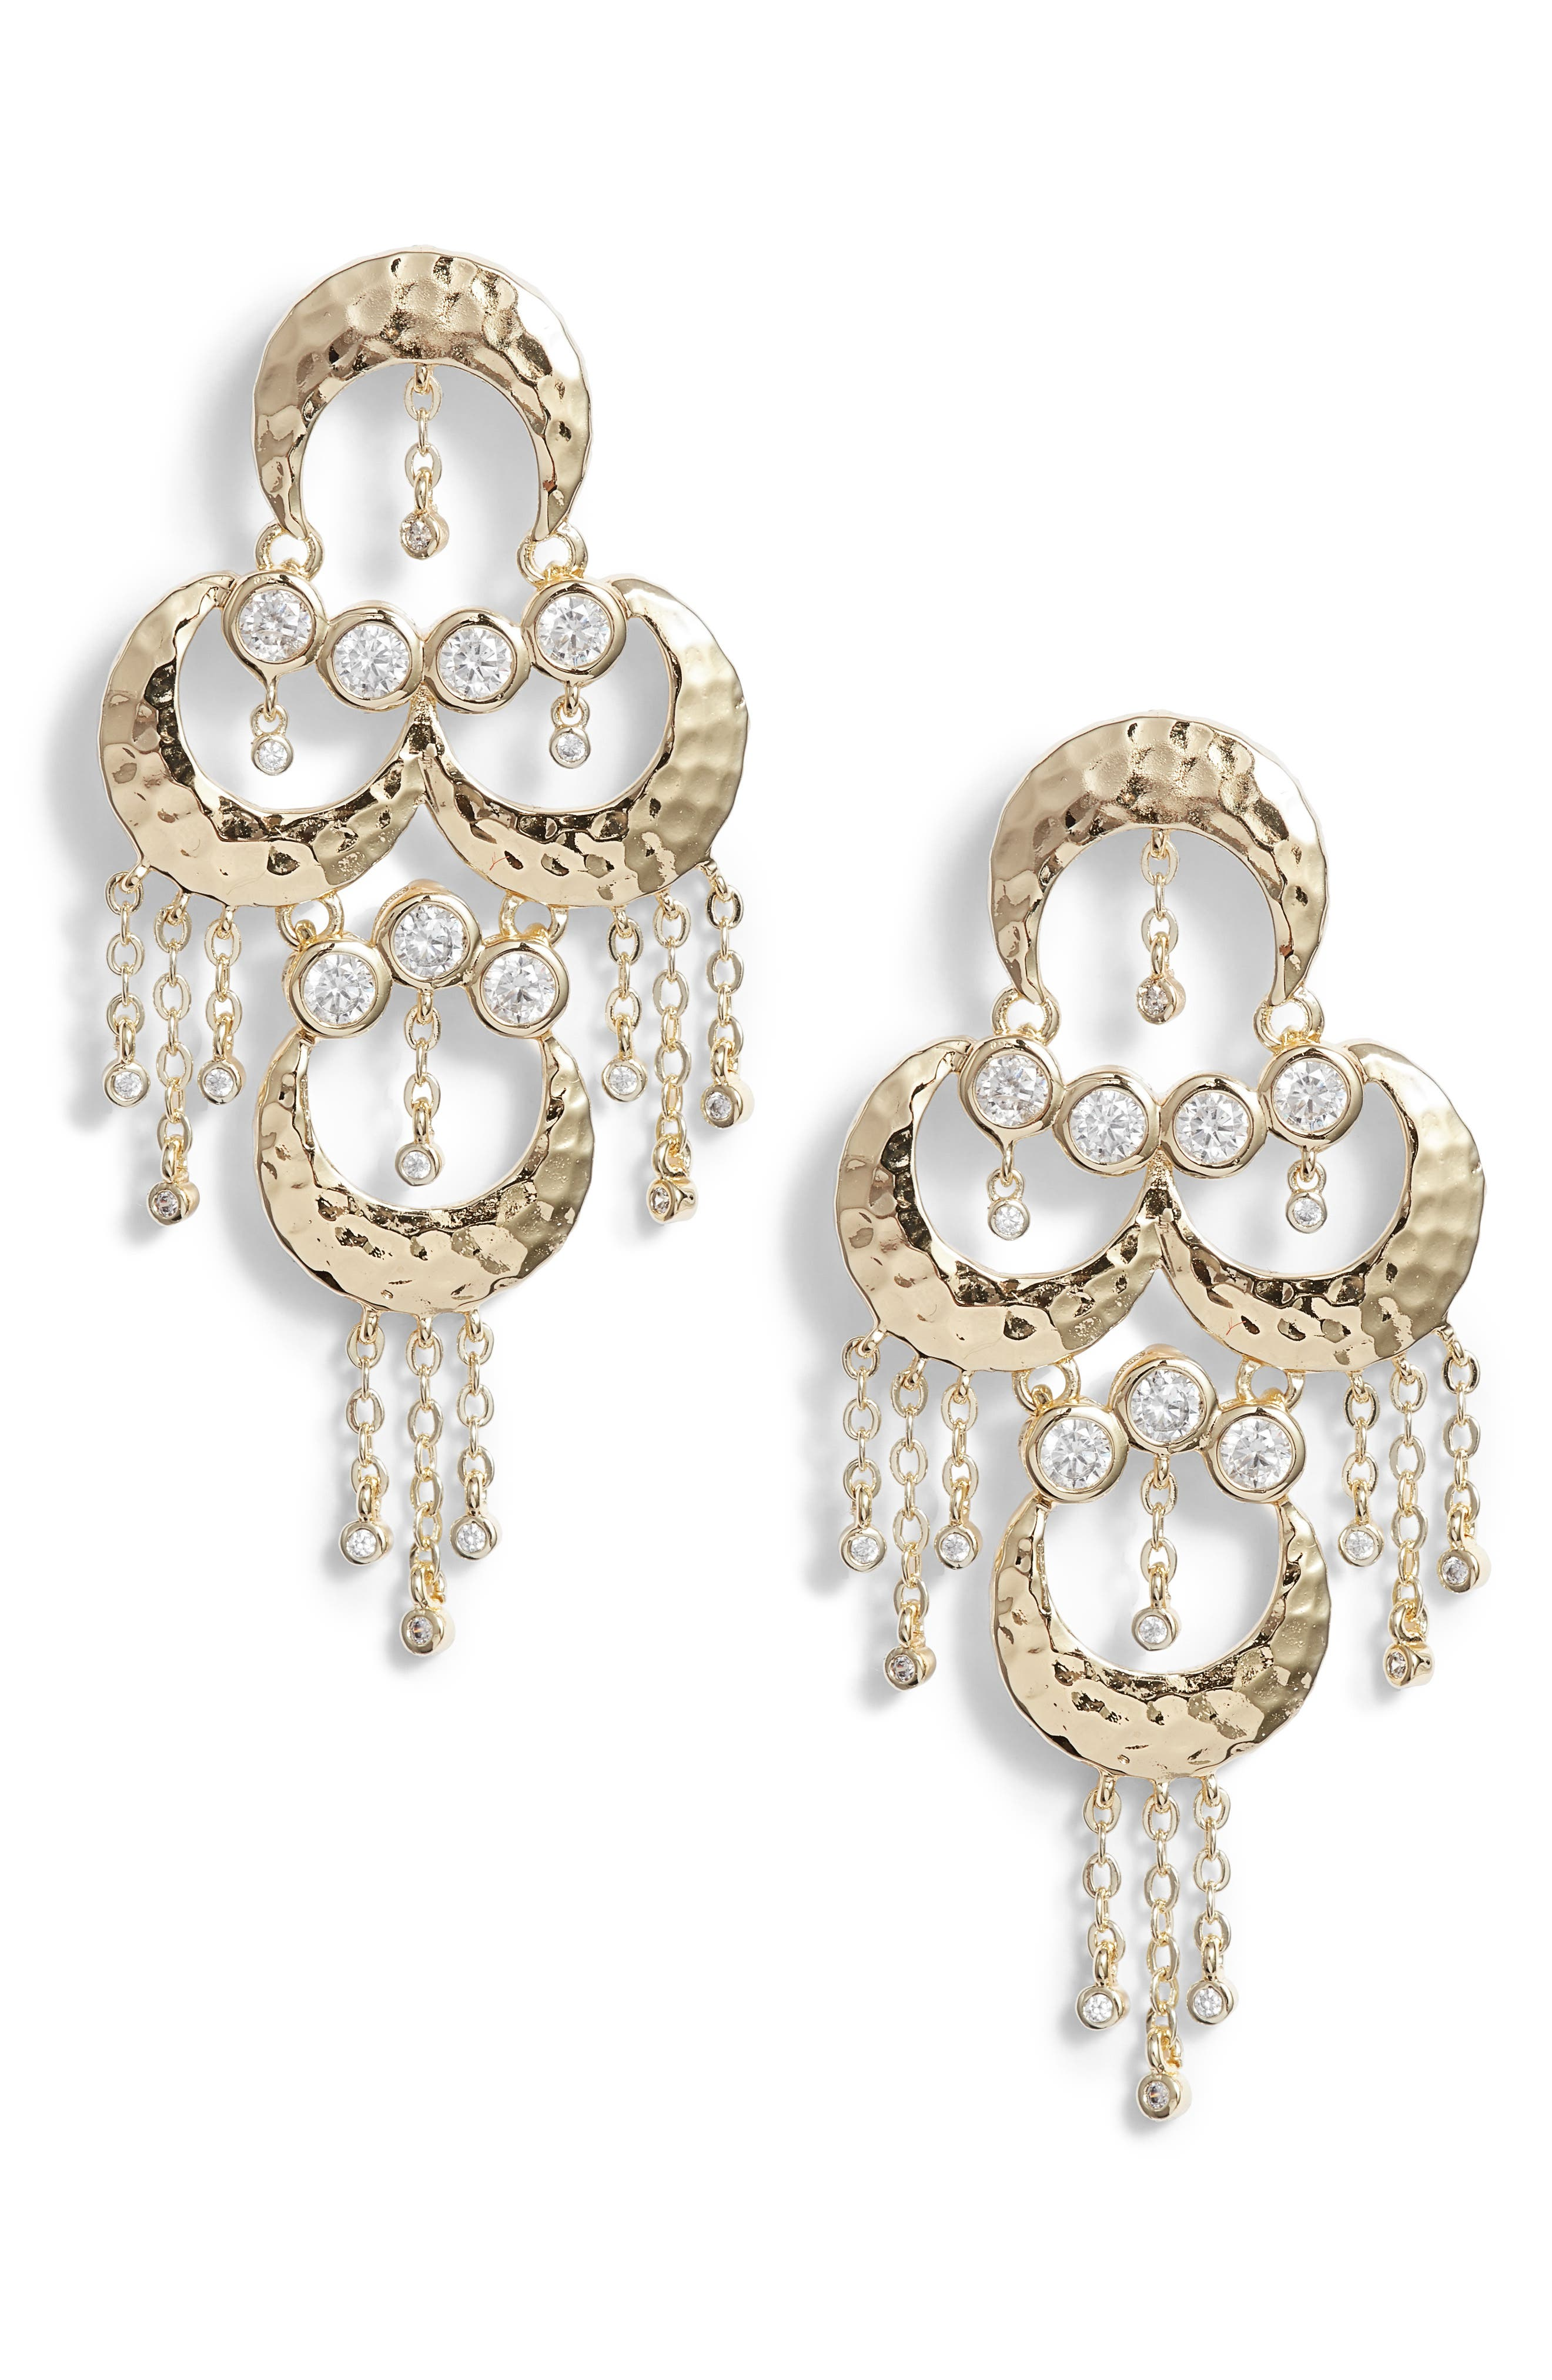 Tran Baby Chandelier Earrings,                             Main thumbnail 1, color,                             GOLD/ WHITE CZ